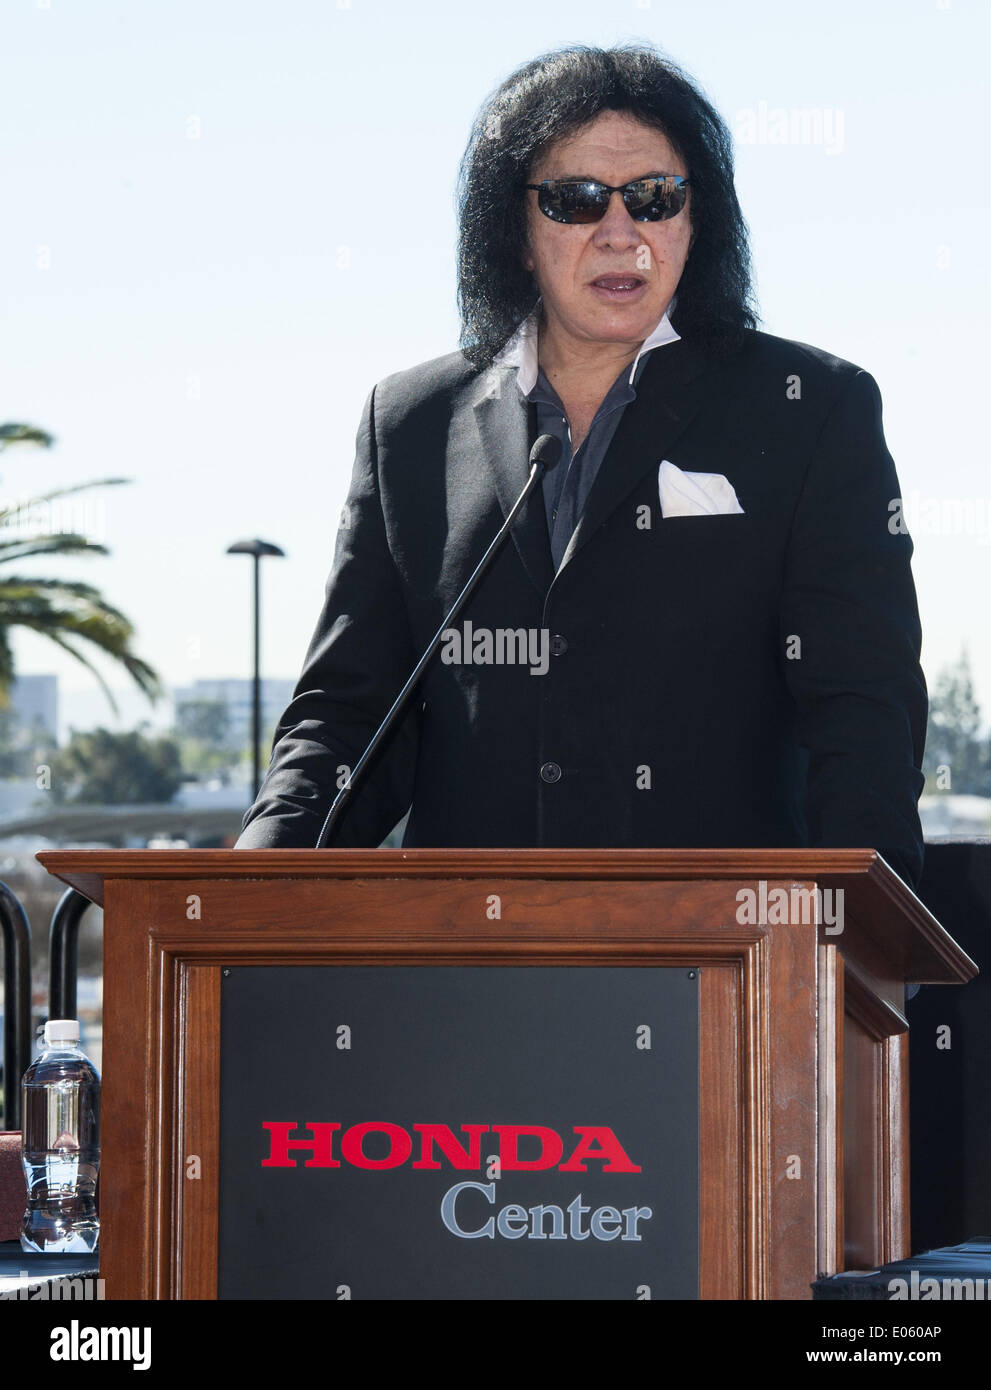 March 10, 2014 - Anaheim, California, U.S - GENE SIMMONS talks about the new LA Kiss Arena Football team on Monday morning at Honda Center..  The newly formed LA Kiss, Arena Football's newest team, held their first media event at The Honda Center on Monday morning, March 10, 2014, in Anaheim.  The LA Kiss, named after famed rock and roll band, Kiss, boasts two members of the band as owners, Gene Simmons and Paul Stanley.  The co-owners announced a free Kiss concert for all season ticket holders as part of a $99 dollar package. (Credit Image: © David Bro/ZUMAPRESS.com) - Stock Image